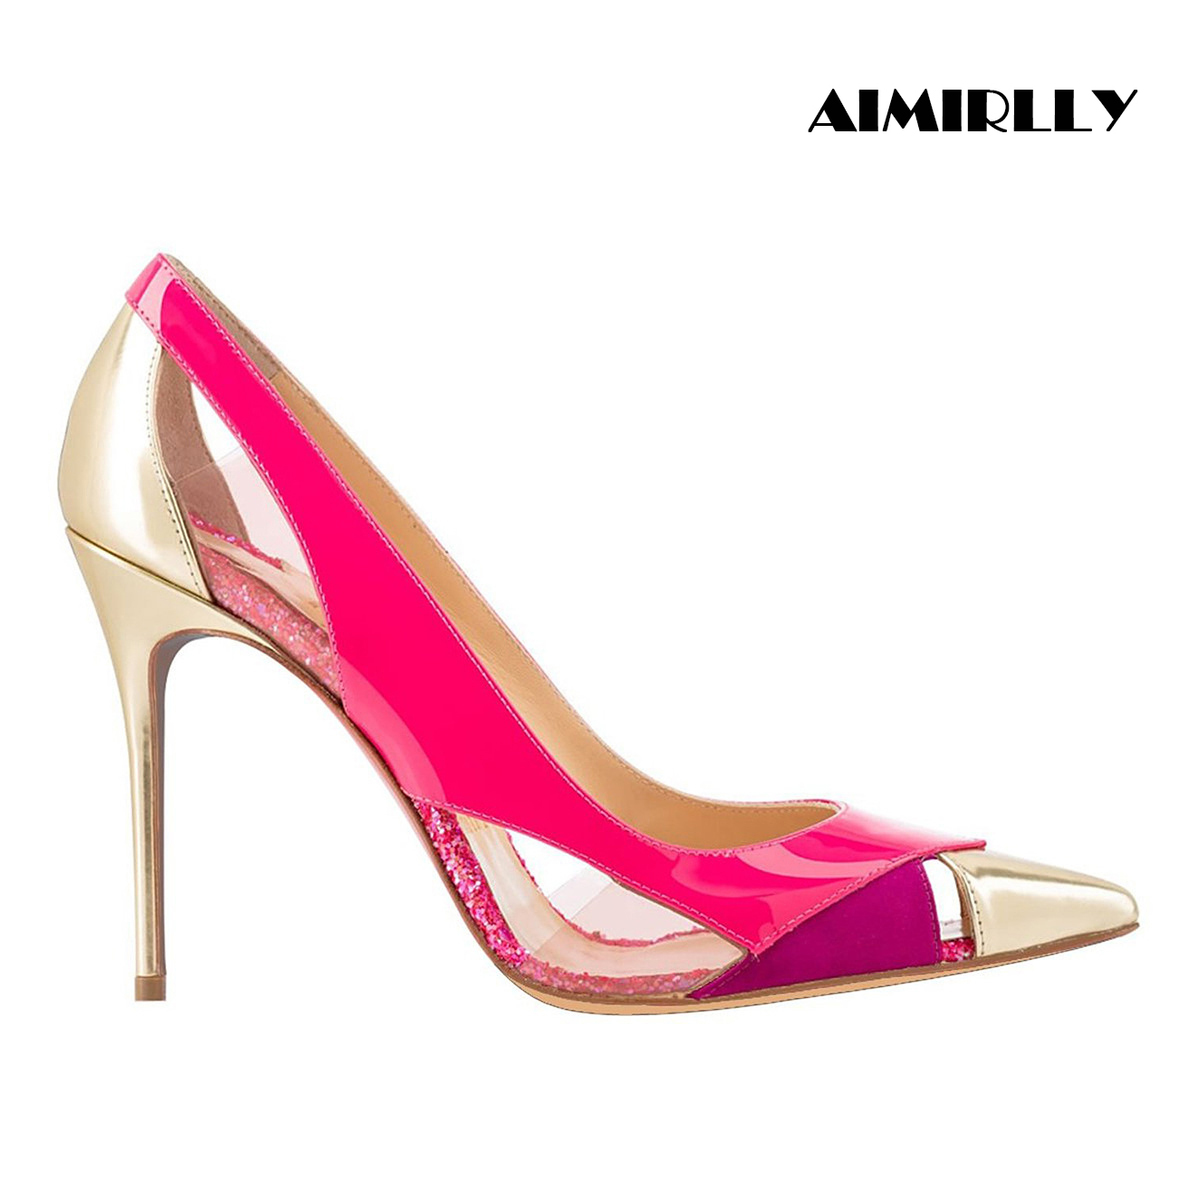 Aimirlly Women Shoes Pointed Toe High Heels Pumps Cutout & Patchwork Stilettos Spring Summer Wedding Party Shoes Hot Pink Purple